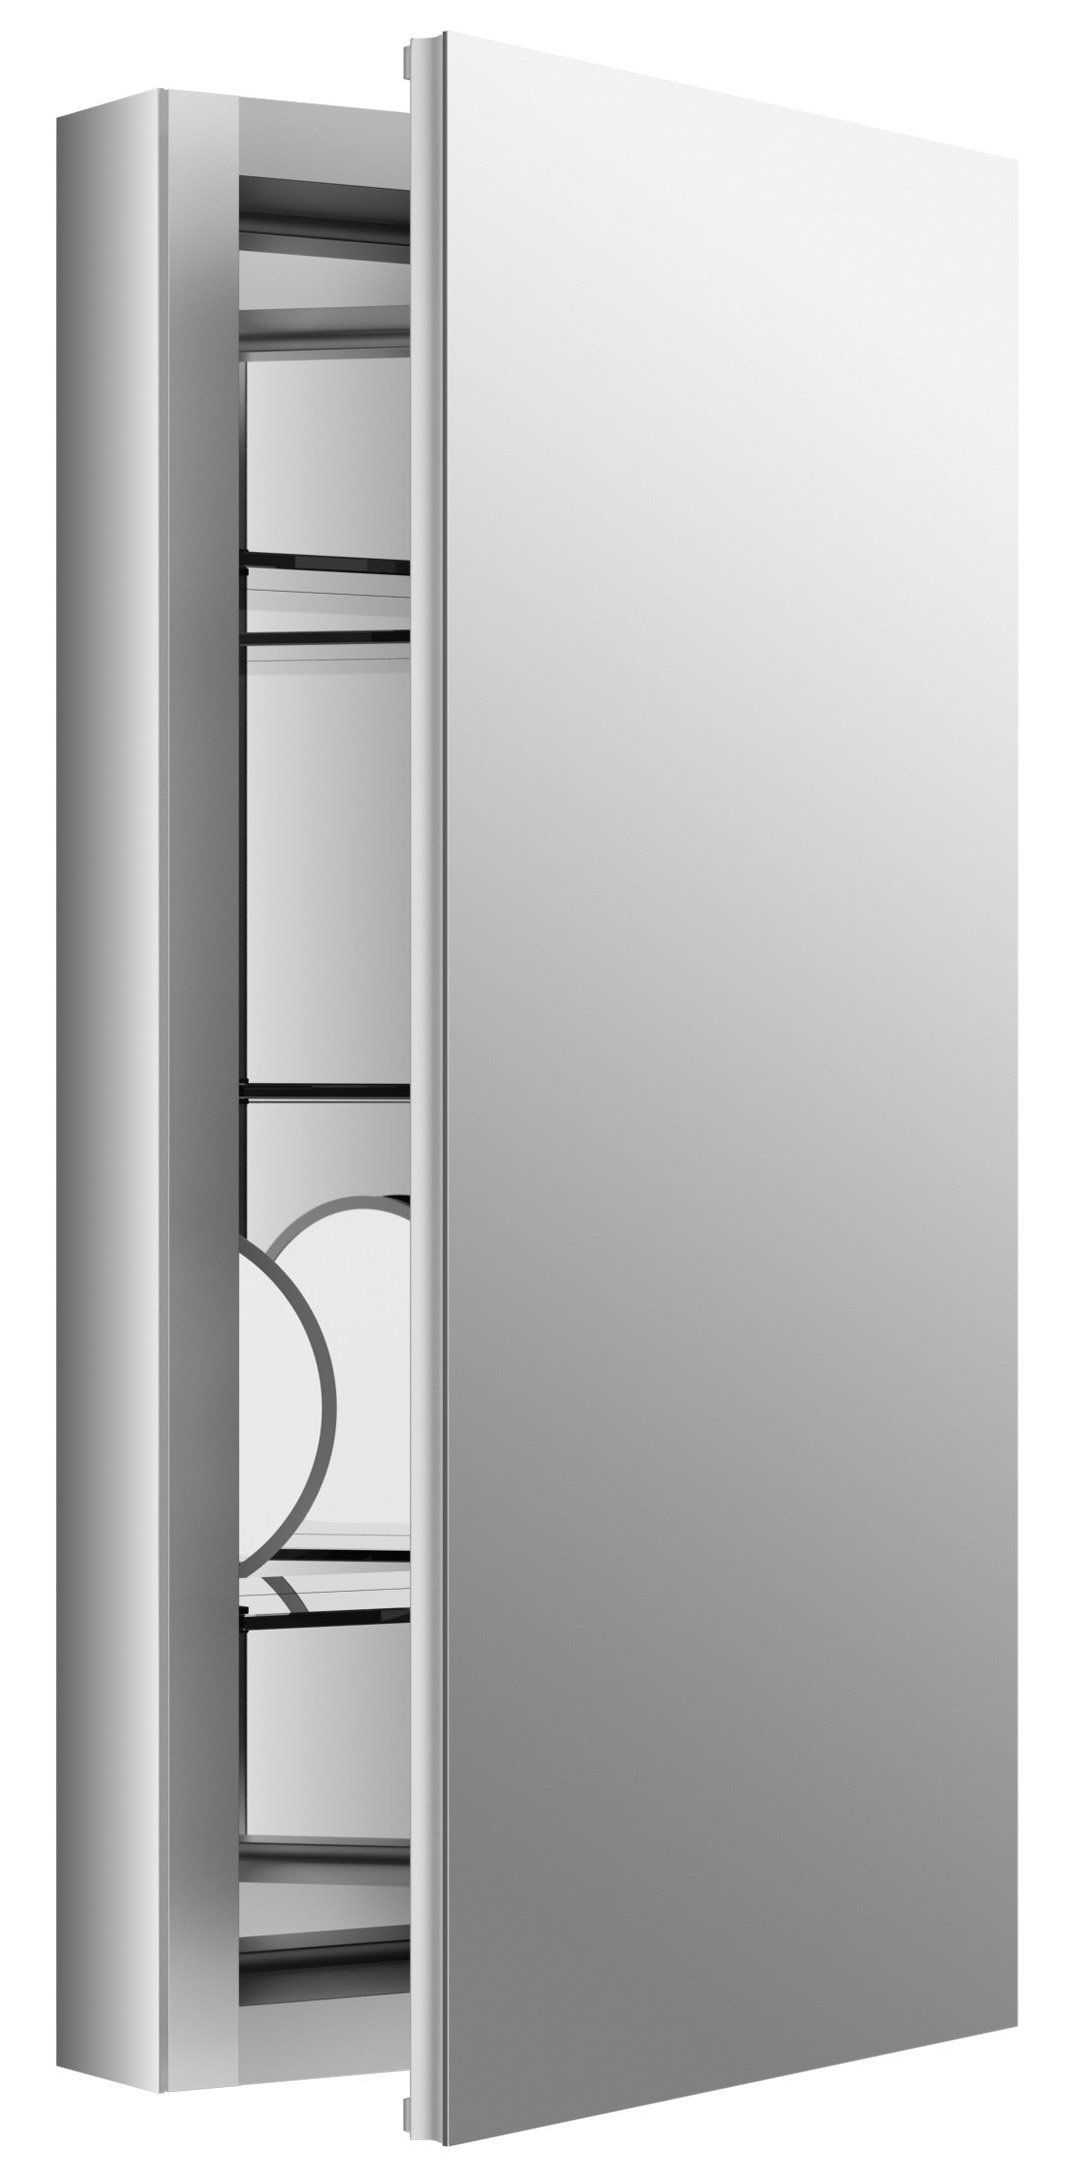 Kohler Verdera 15 In W X 30 H Recessed Medicine Cabinet Anodized Aluminum I Like The Magnified Gl On Inside